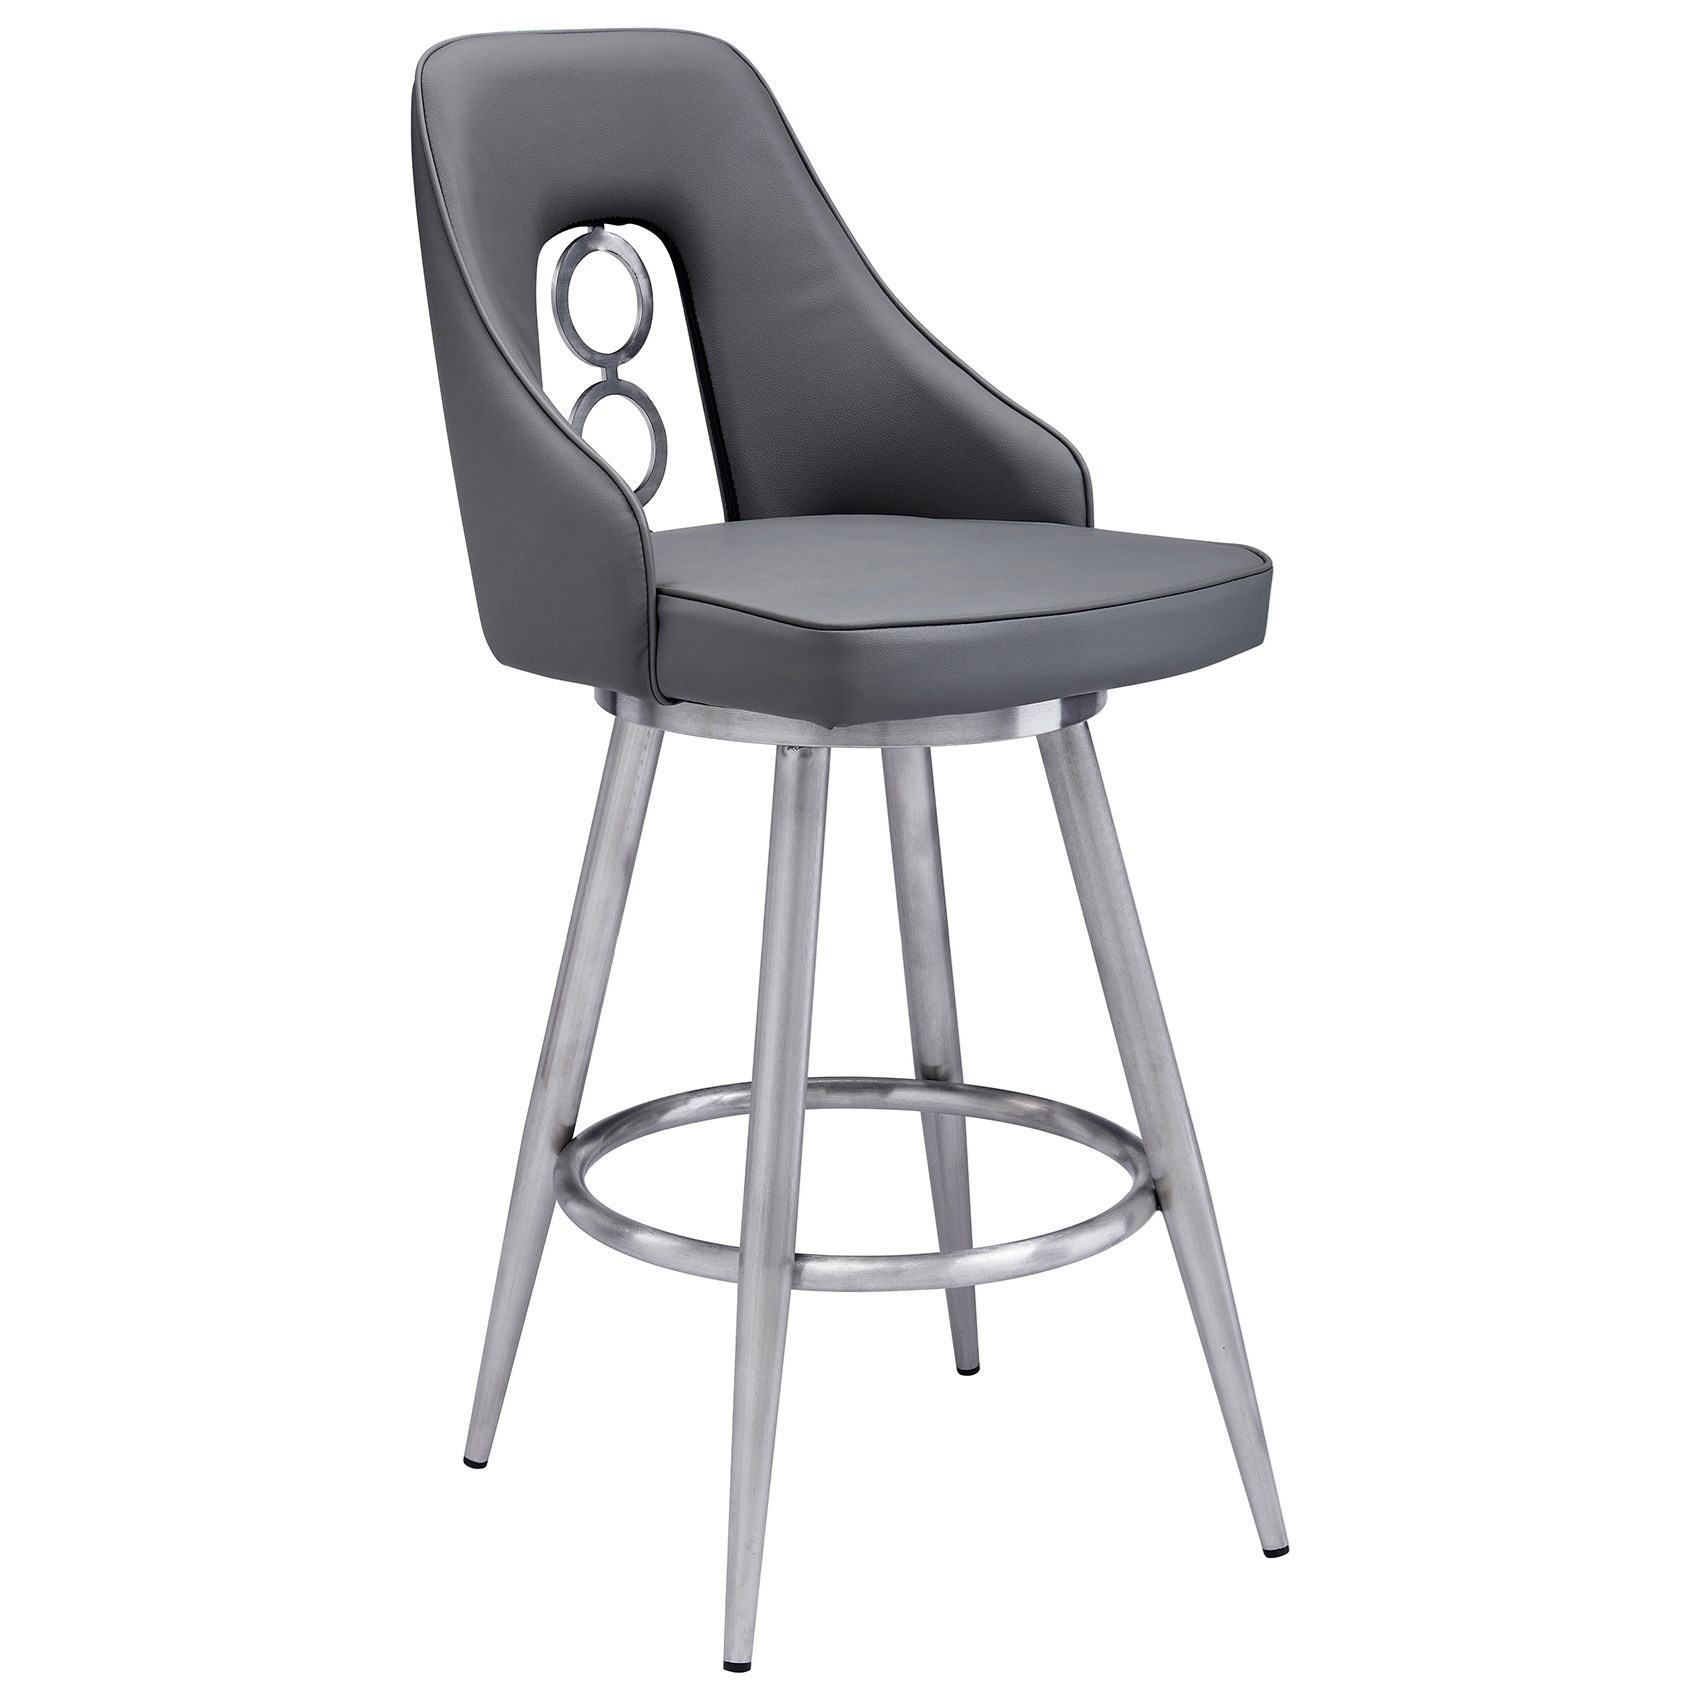 "Ruby Contemporary 30"" Bar Height Barstool by Armen Living at Dream Home Interiors"